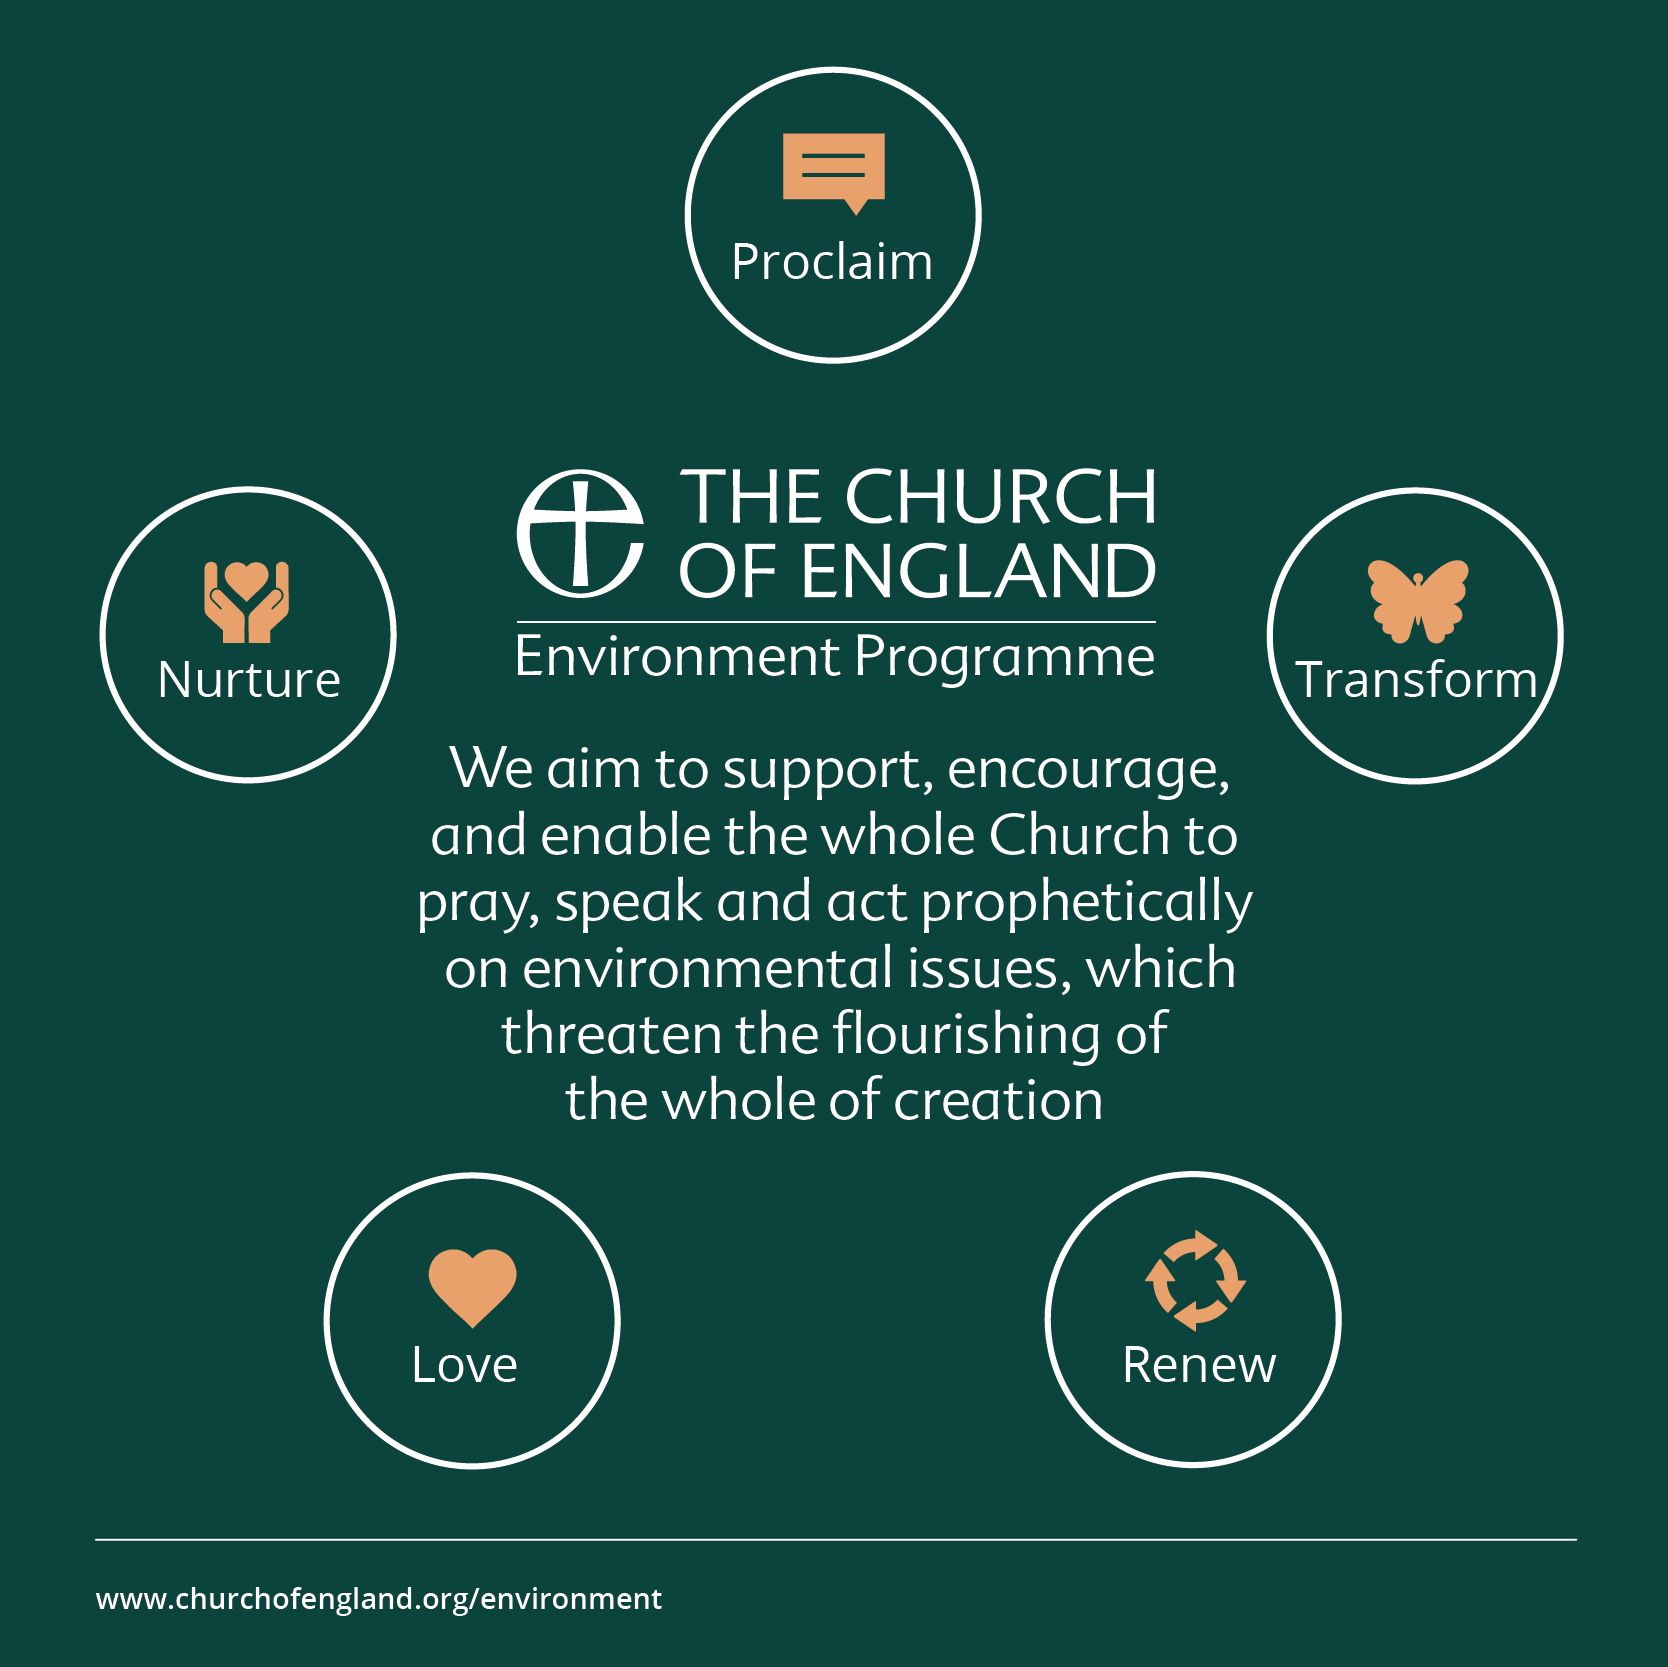 About our environment programme | The Church of England